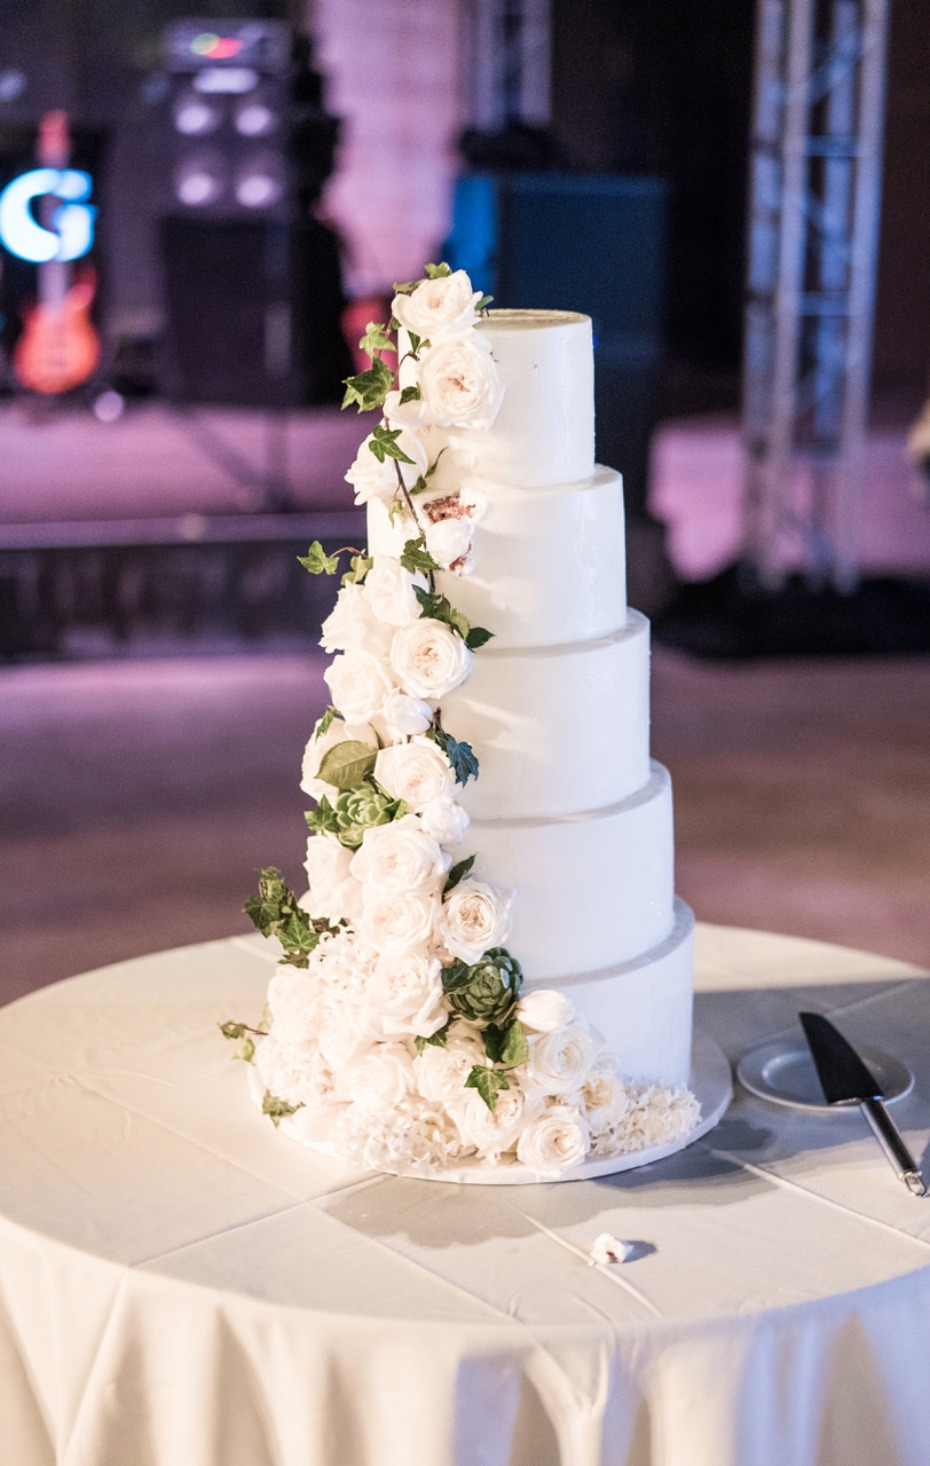 White wedding cake with white roses